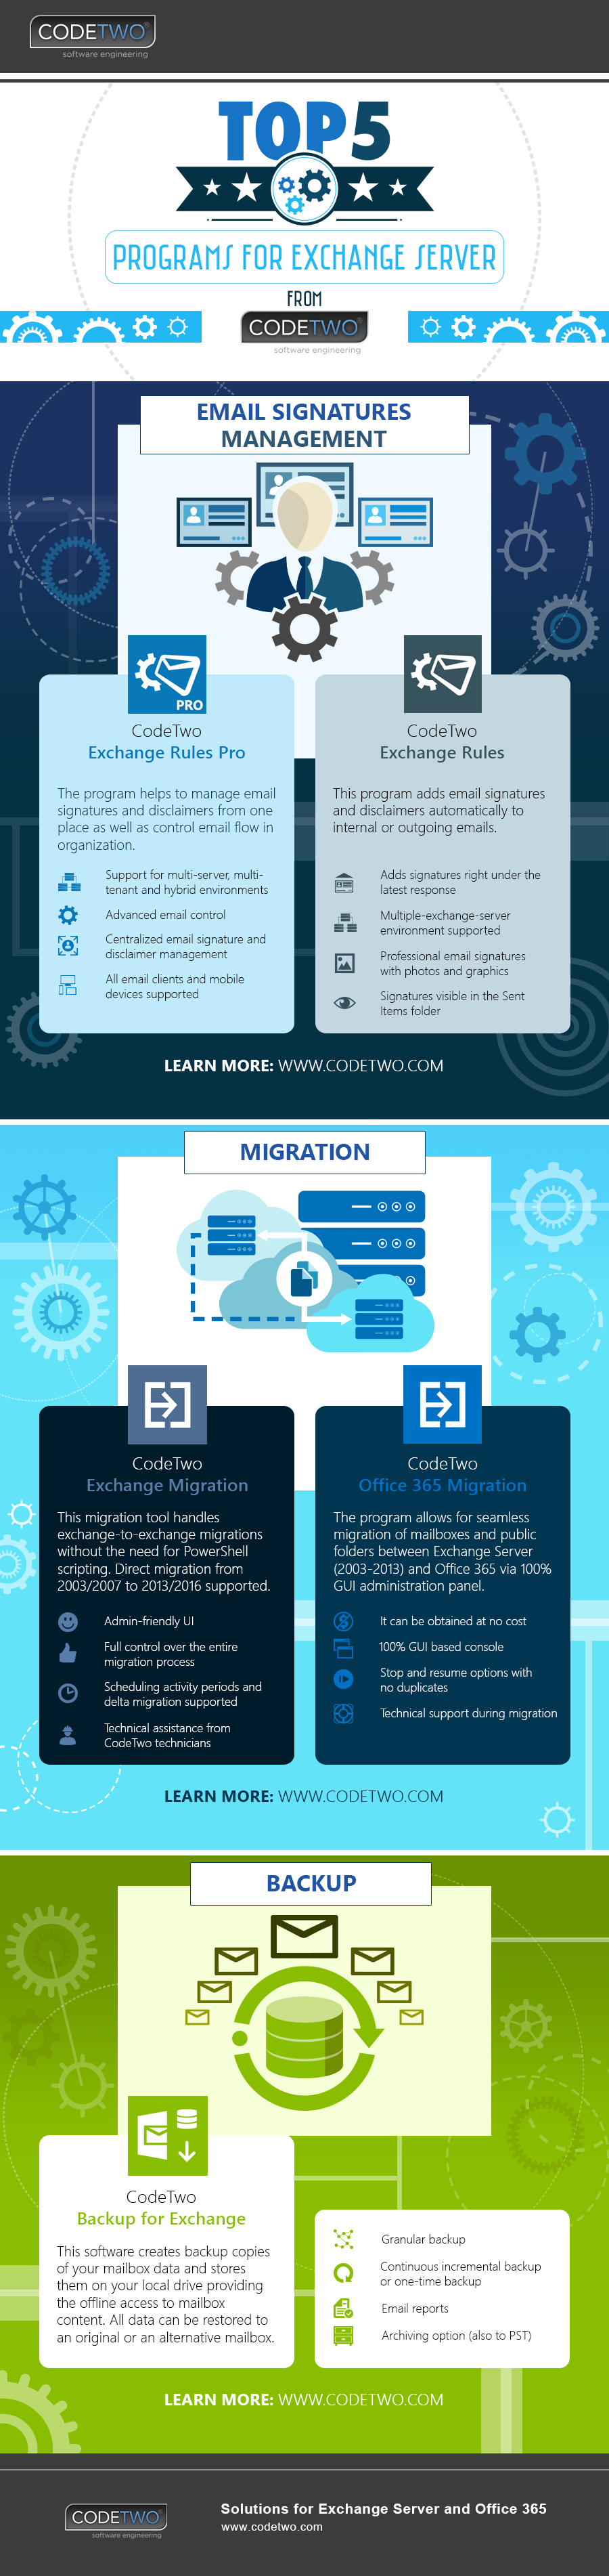 Learn more about CodeTwo Top 5 Programs For Exchange Server - Infographic